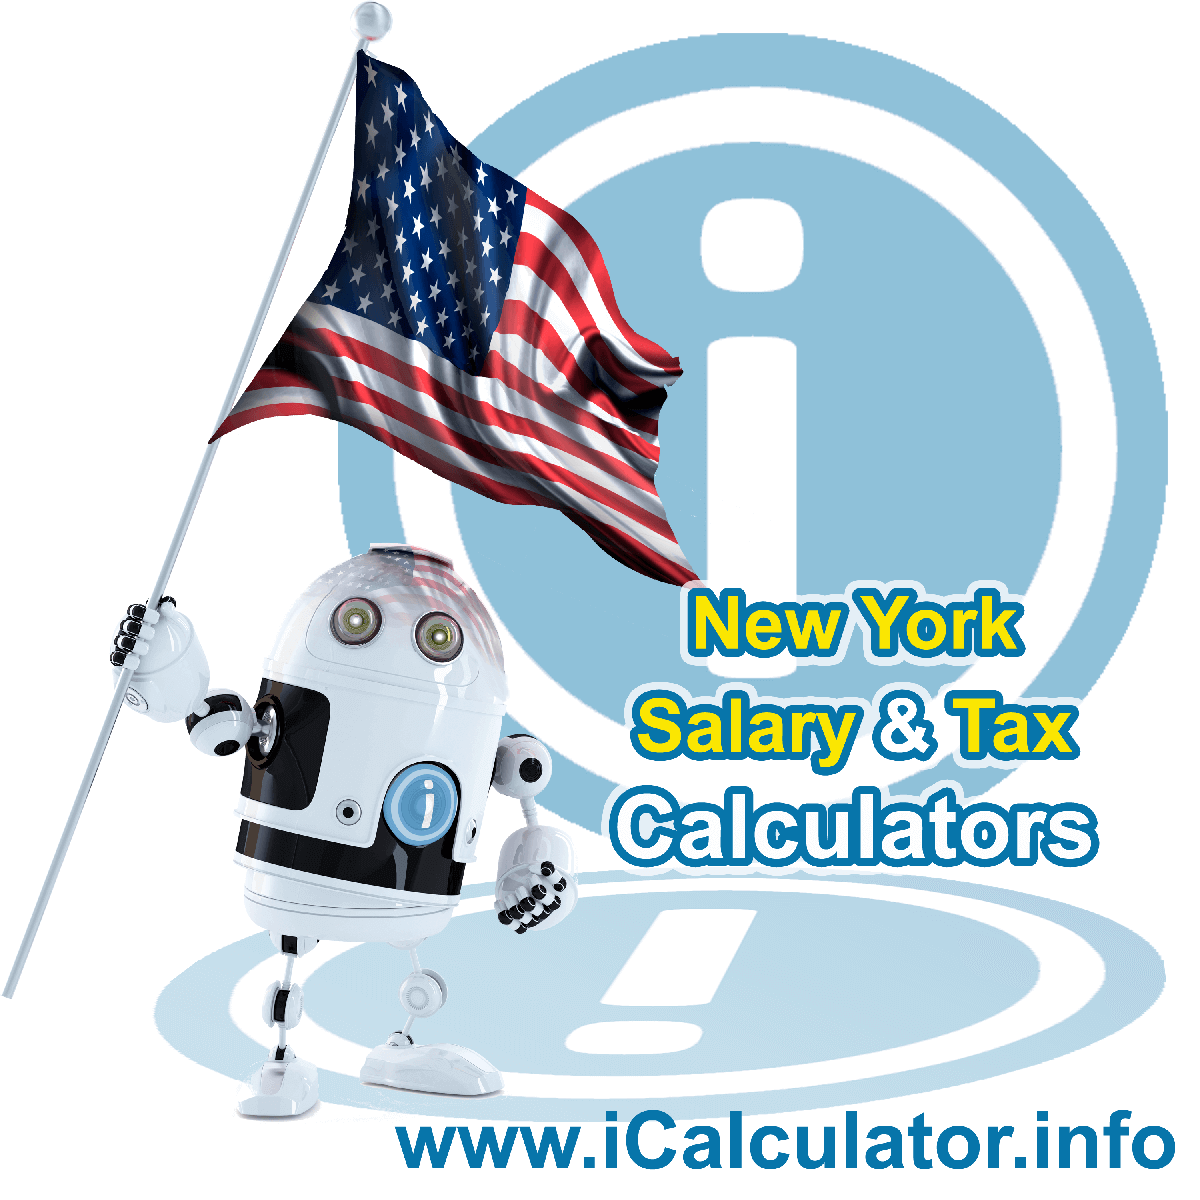 New York Salary Calculator 2021 | iCalculator™ | The New York Salary Calculator allows you to quickly calculate your salary after tax including New York State Tax, Federal State Tax, Medicare Deductions, Social Security, Capital Gains and other income tax and salary deductions complete with supporting New York state tax tables